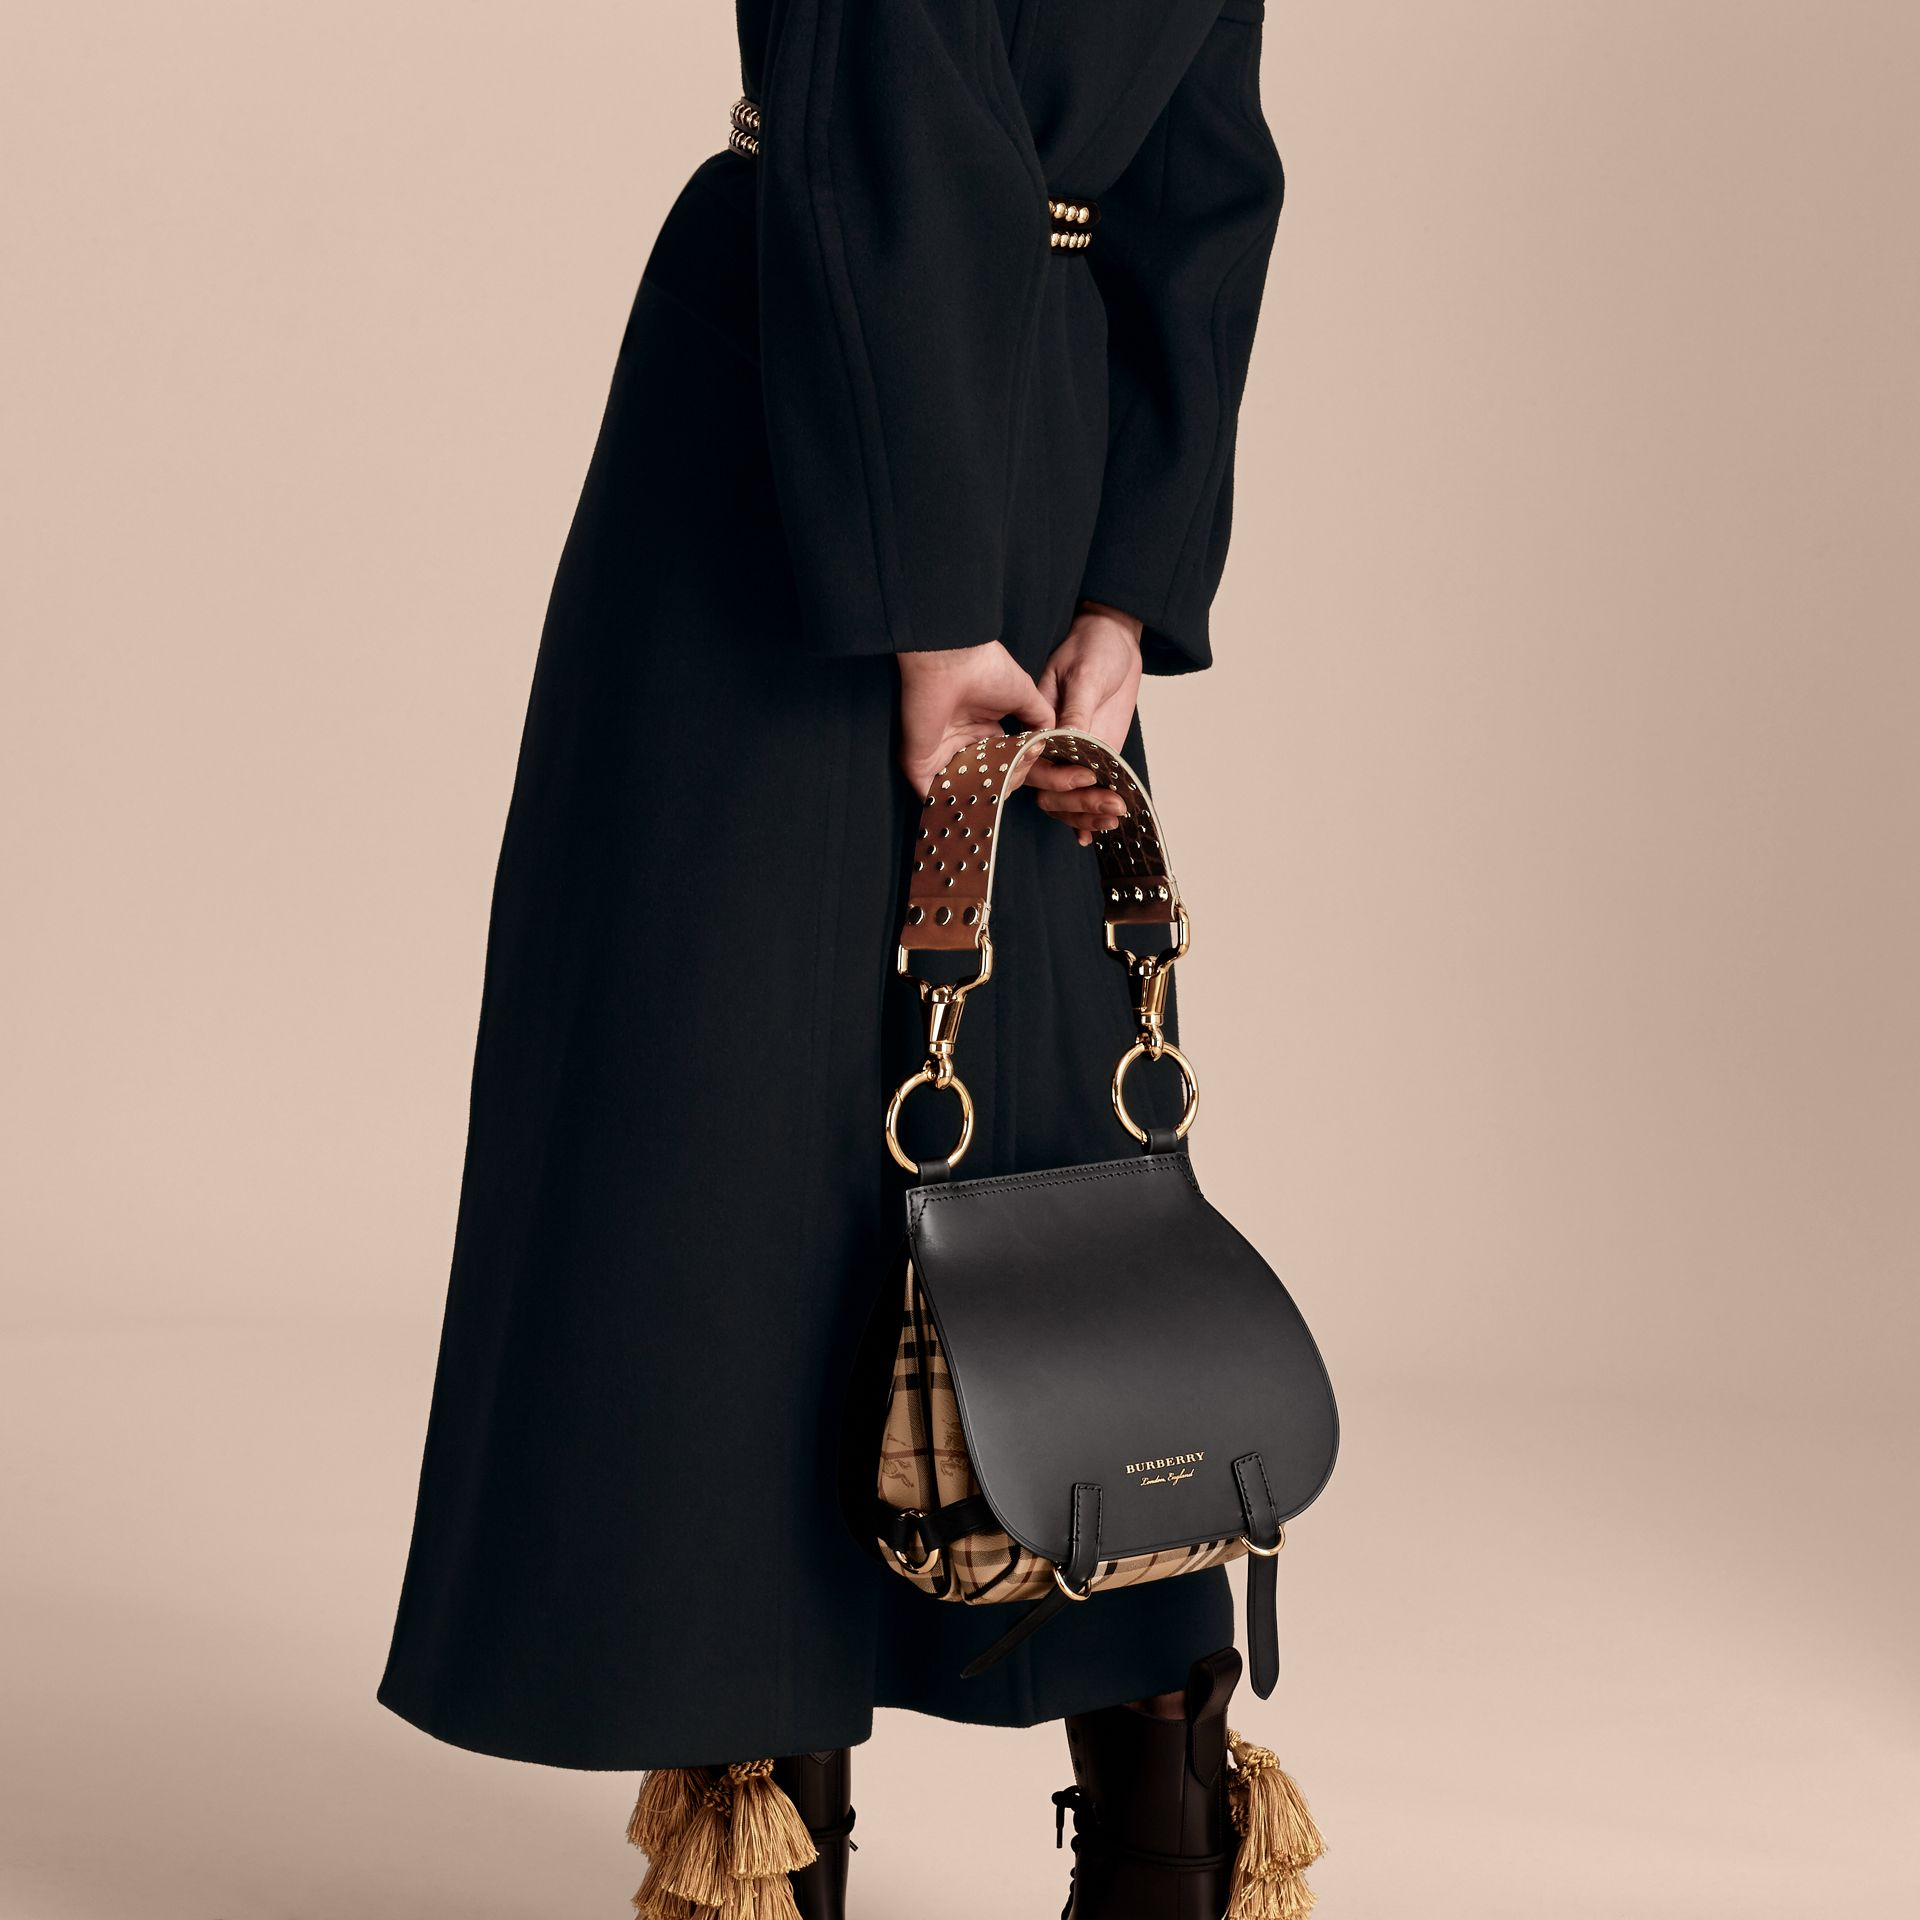 Noir Sac The Bridle en cuir, tissu Haymarket check et alligator - photo de la galerie 3